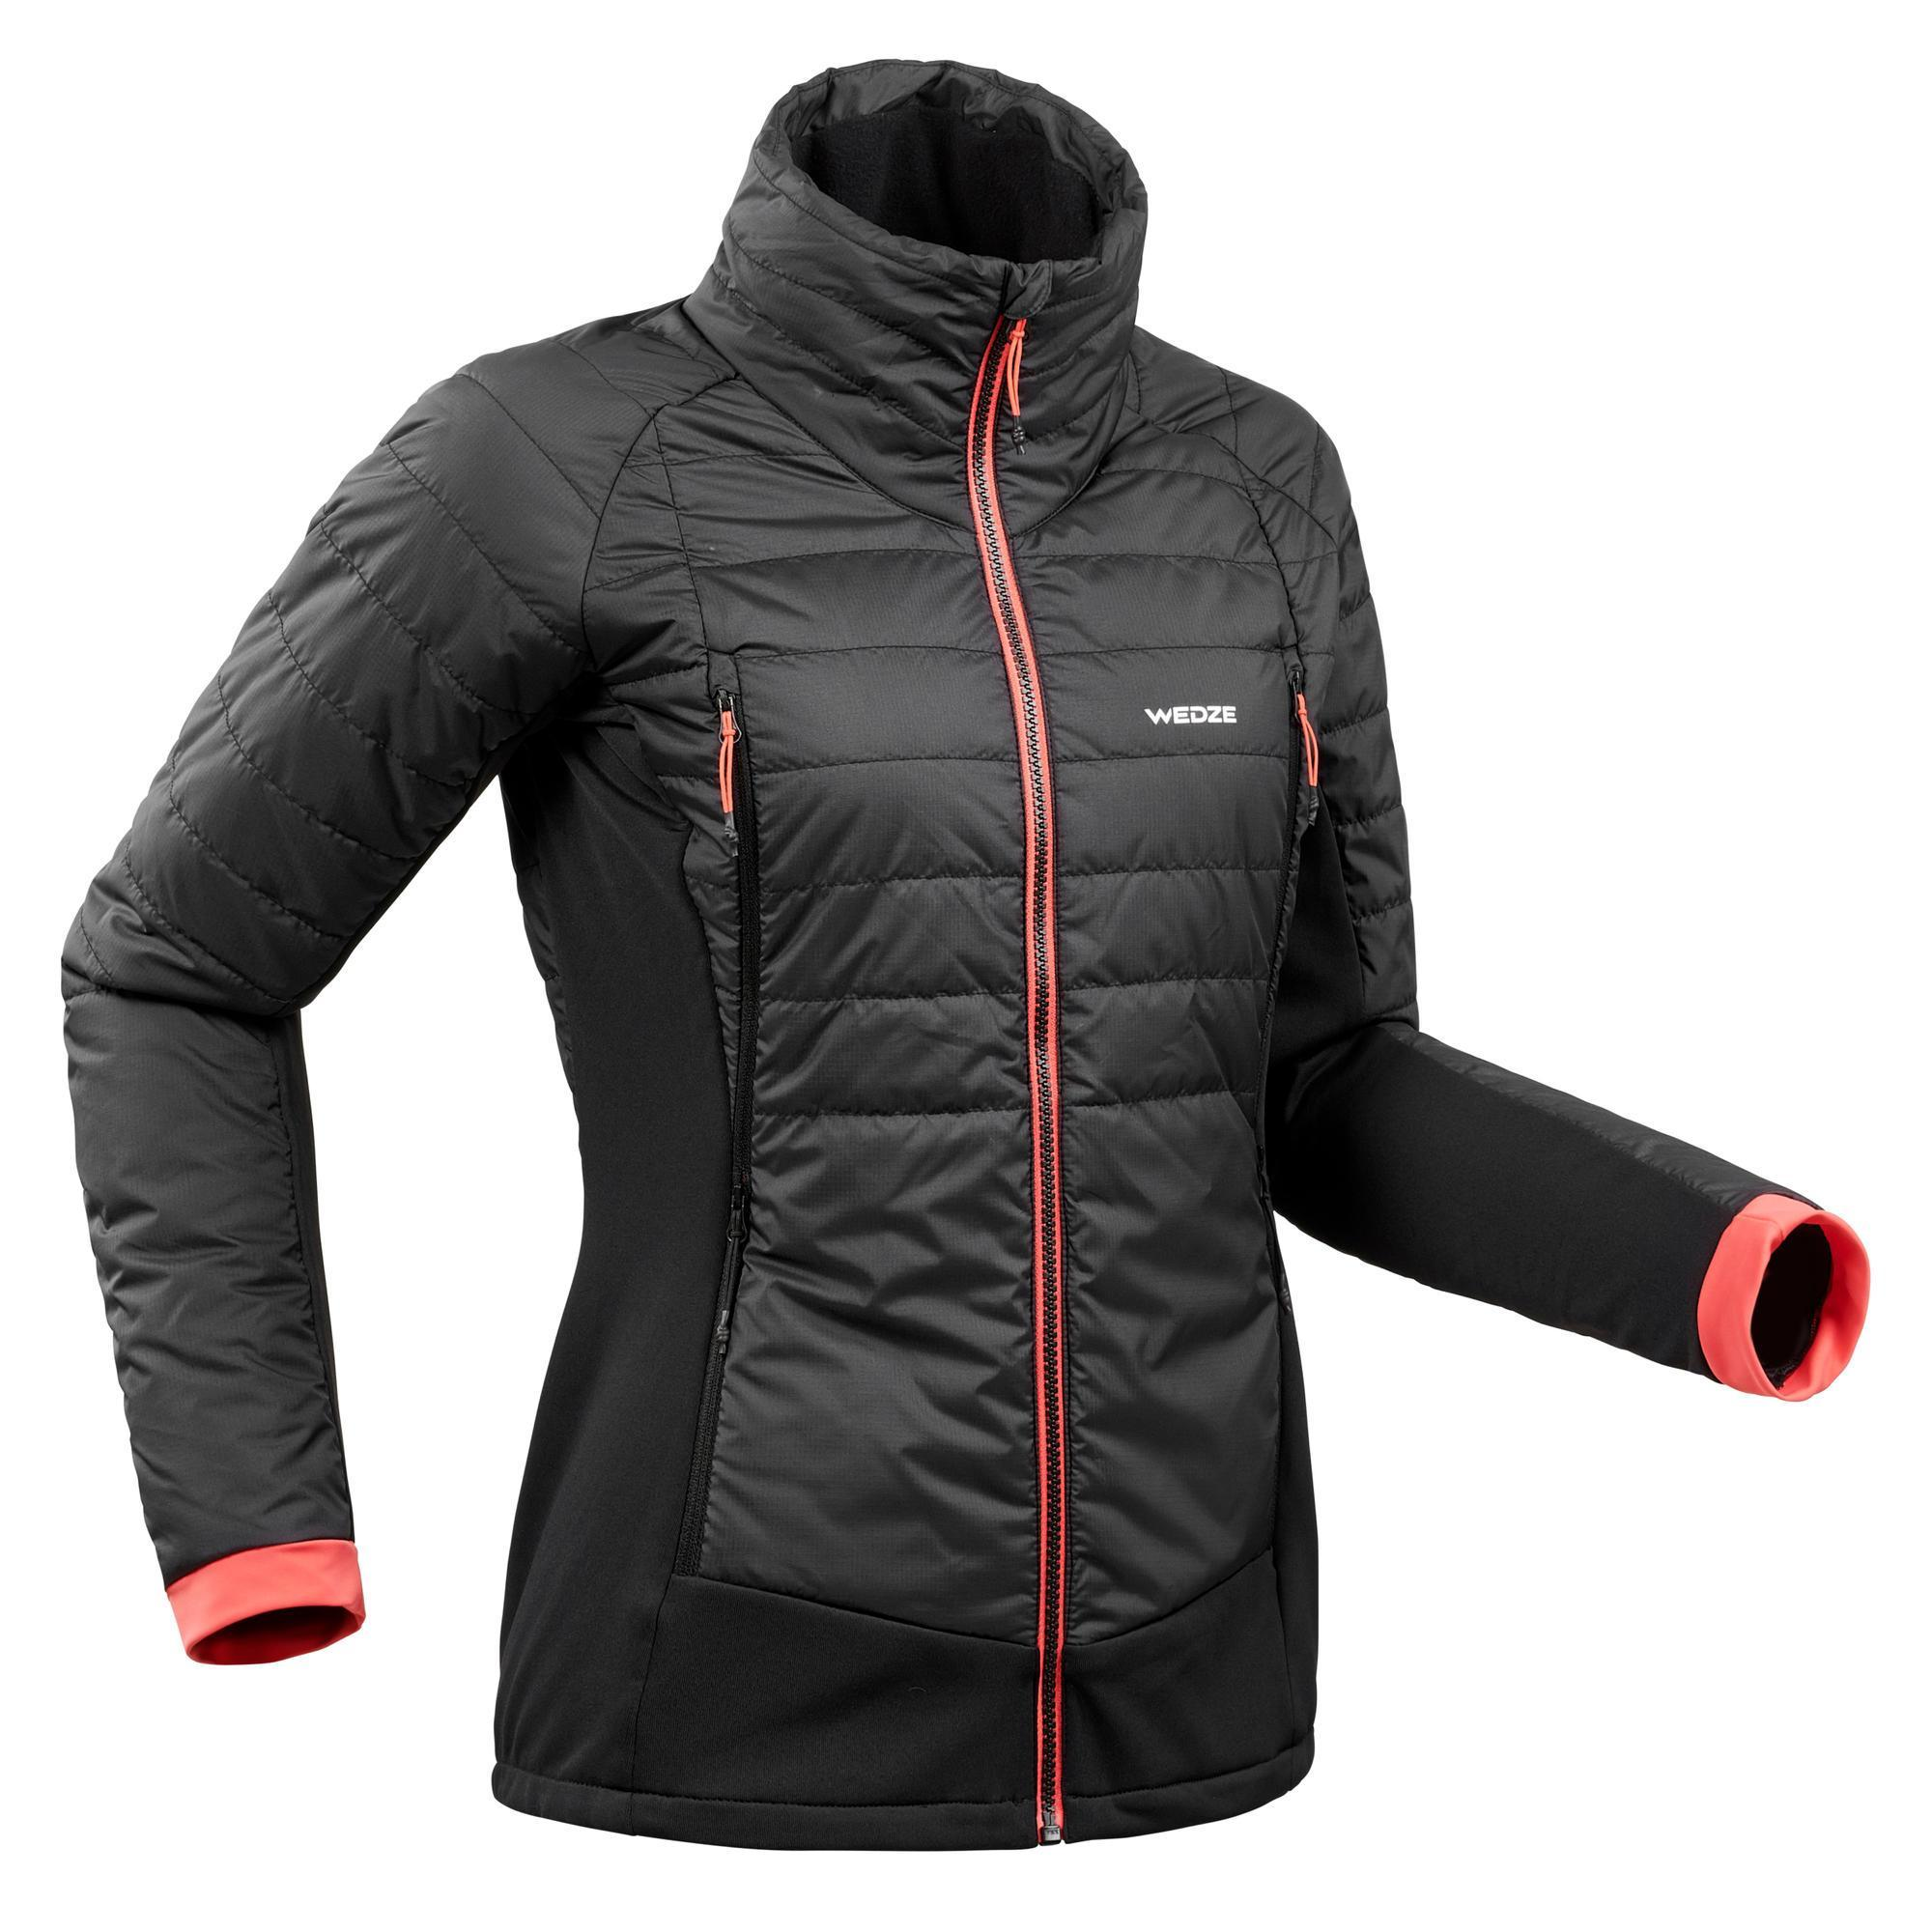 reputable site 75094 08098 Jacken Damen | Für deinen Sport | DECATHLON